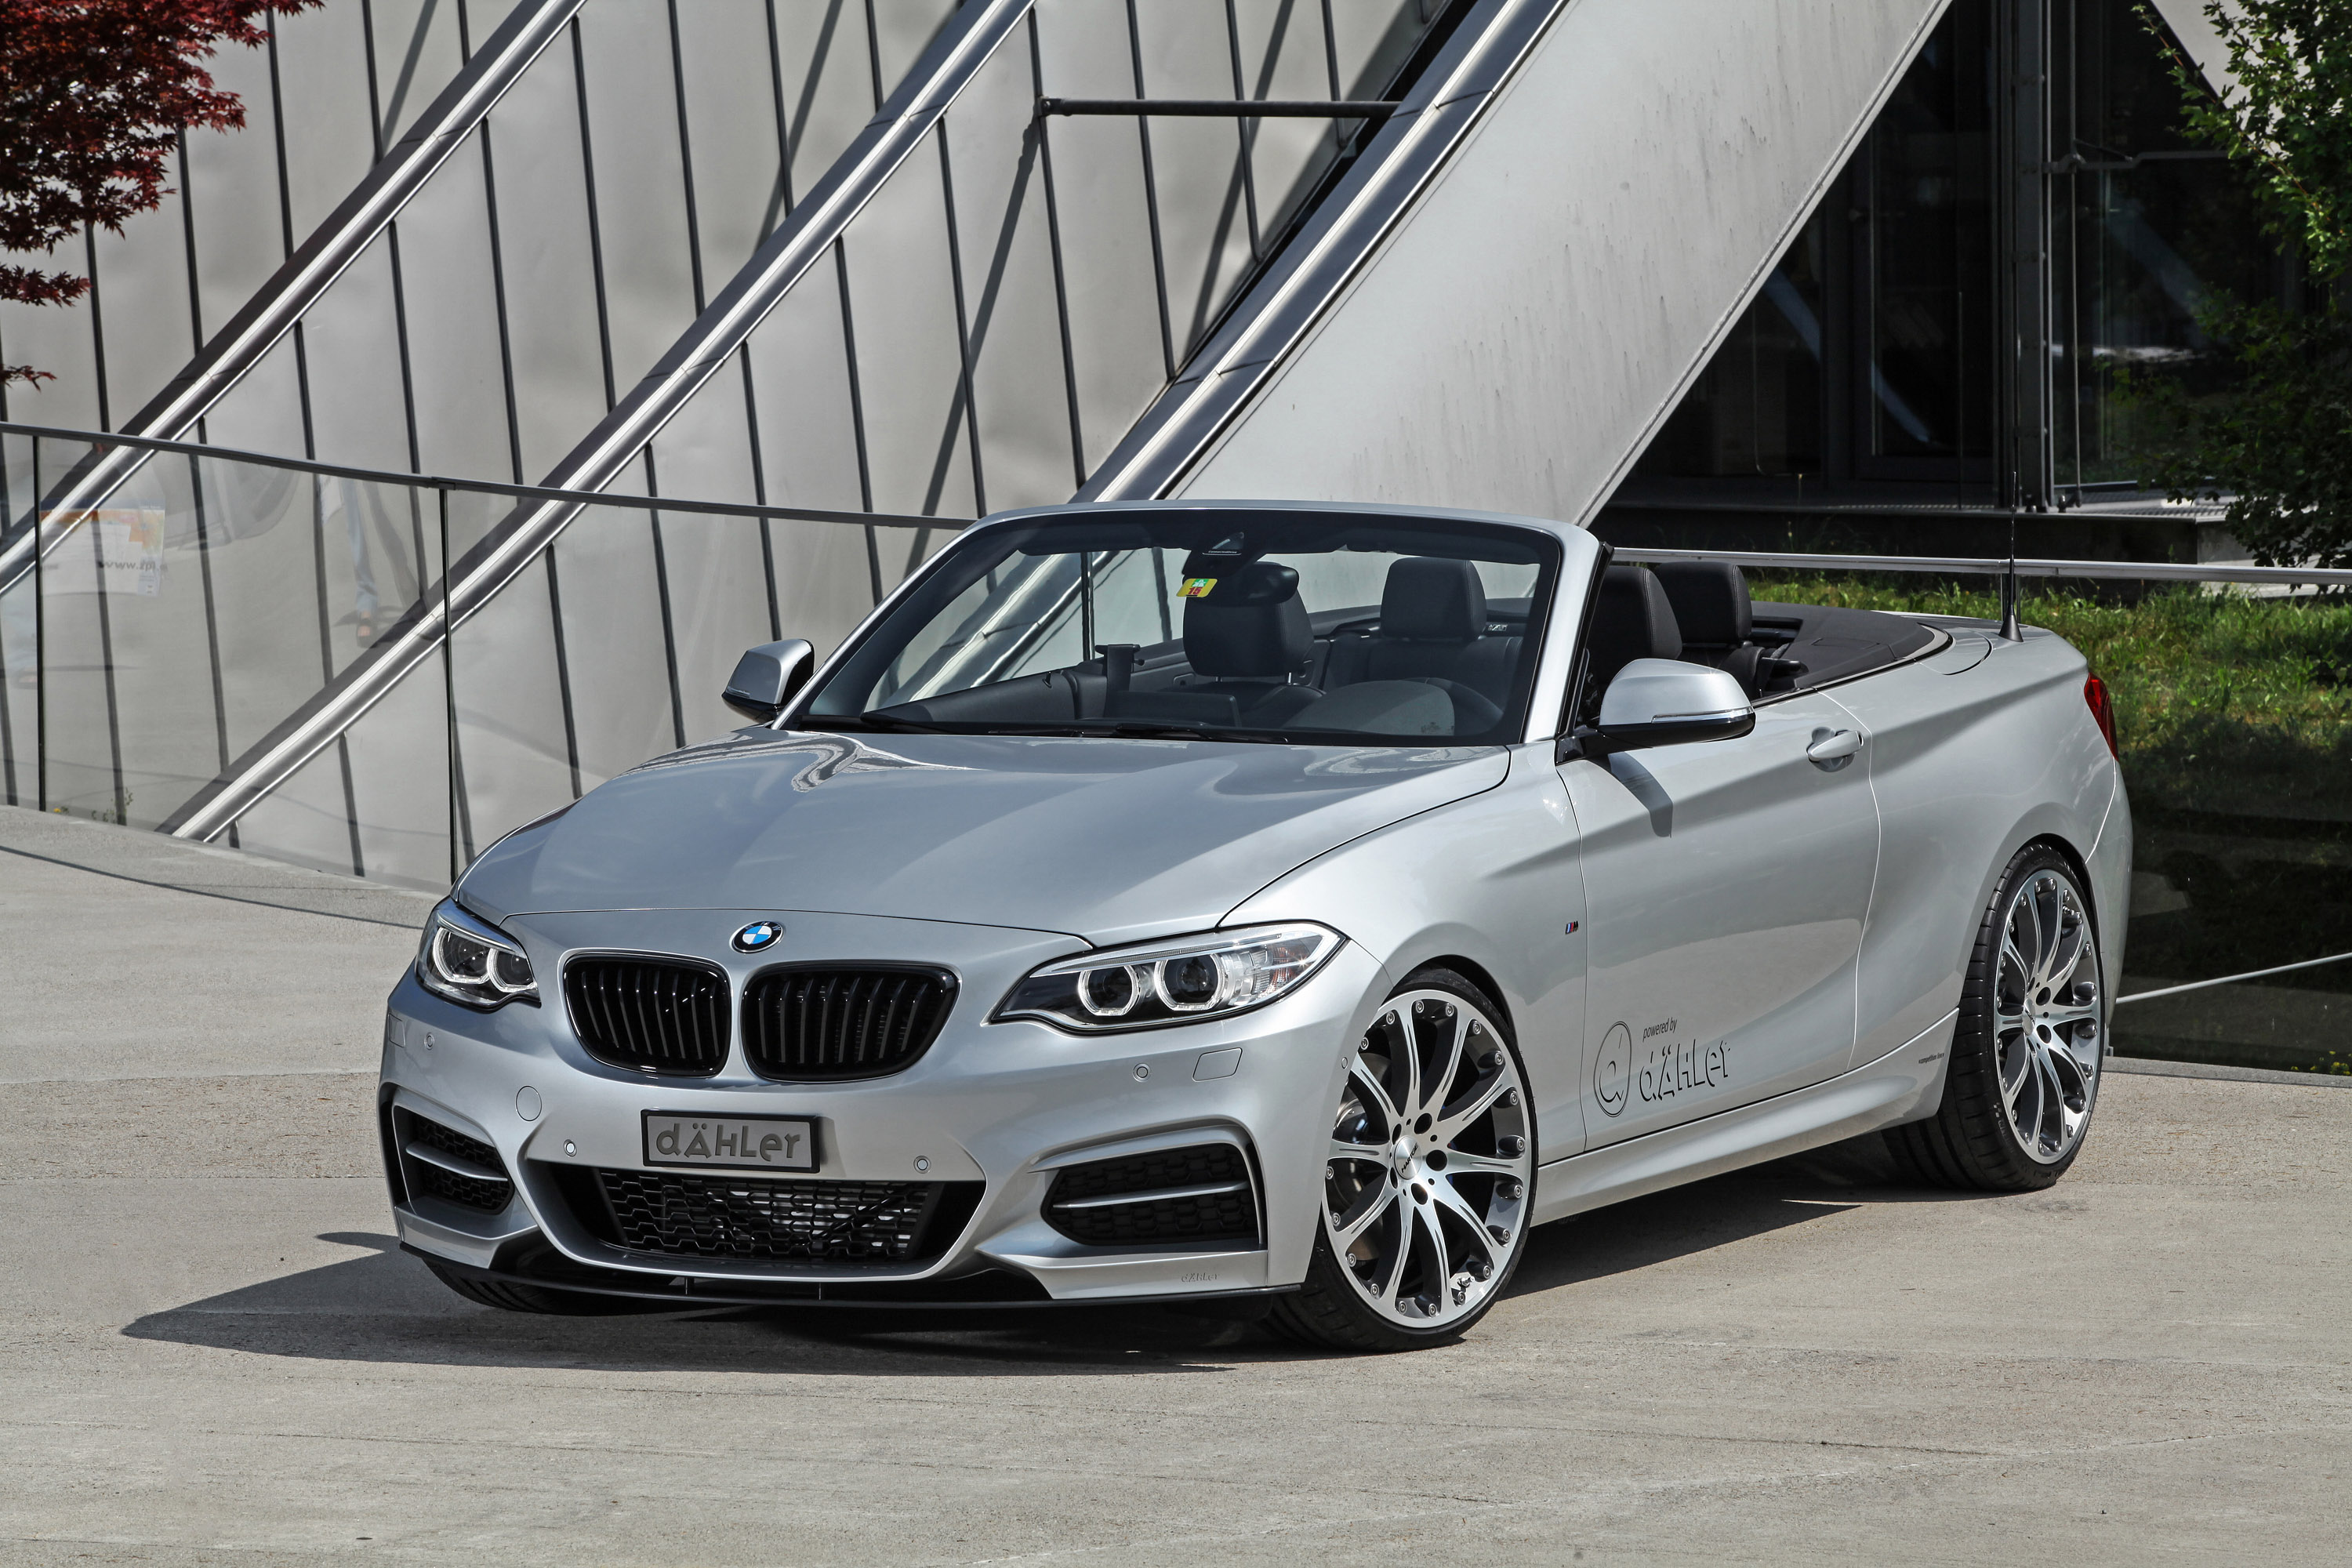 D 196 Hler Releases Bmw M235i Cabriolet With 390hp